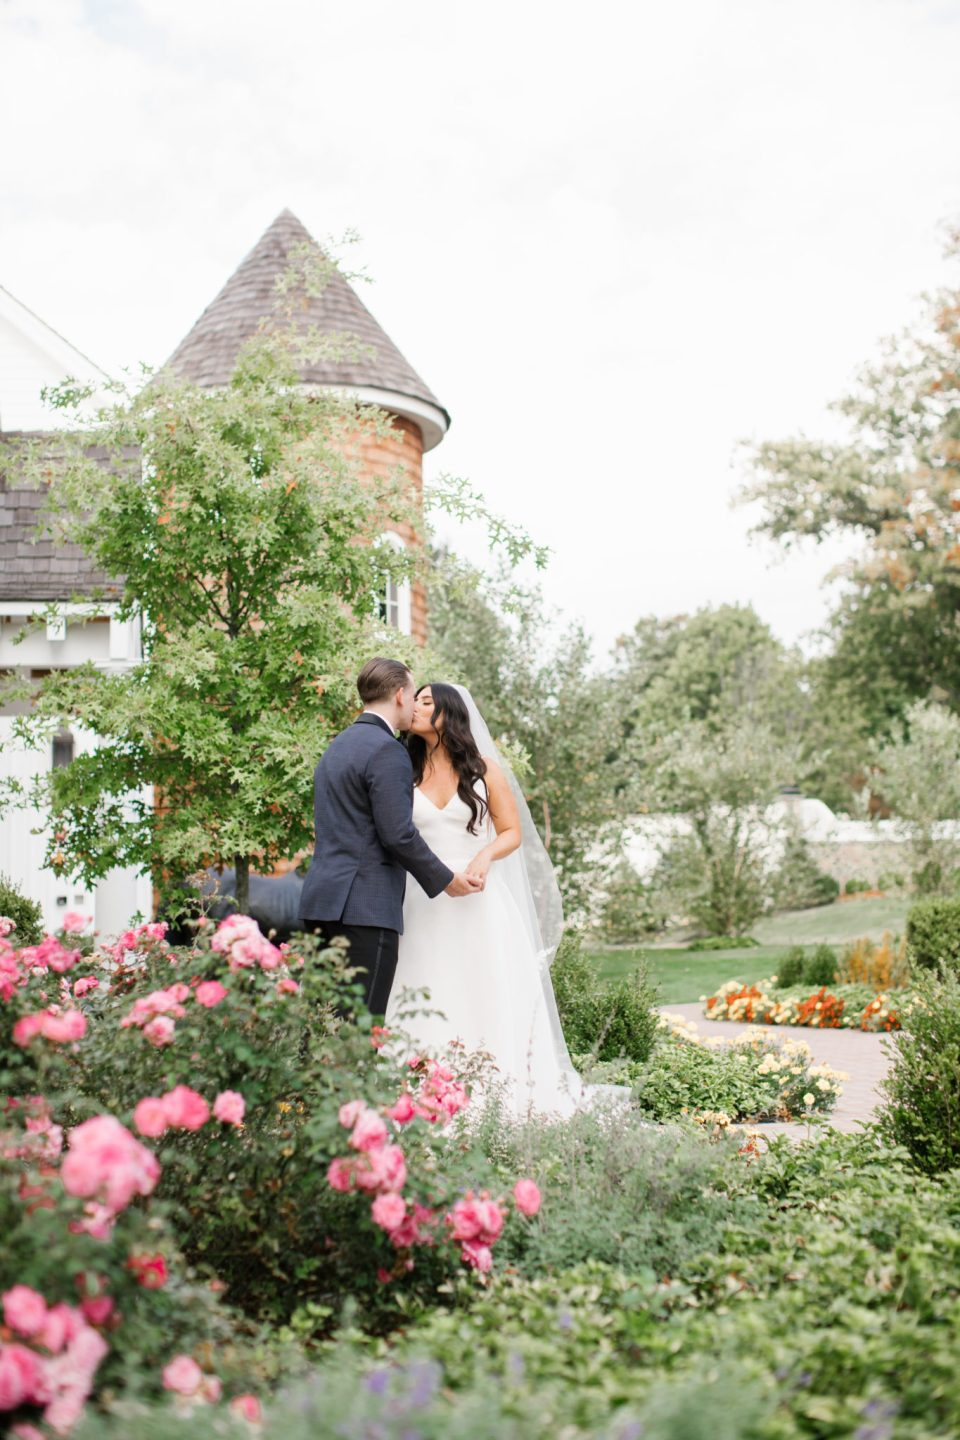 Ashley Mac Photographs photographs happy couple in garden at Ryland Inn